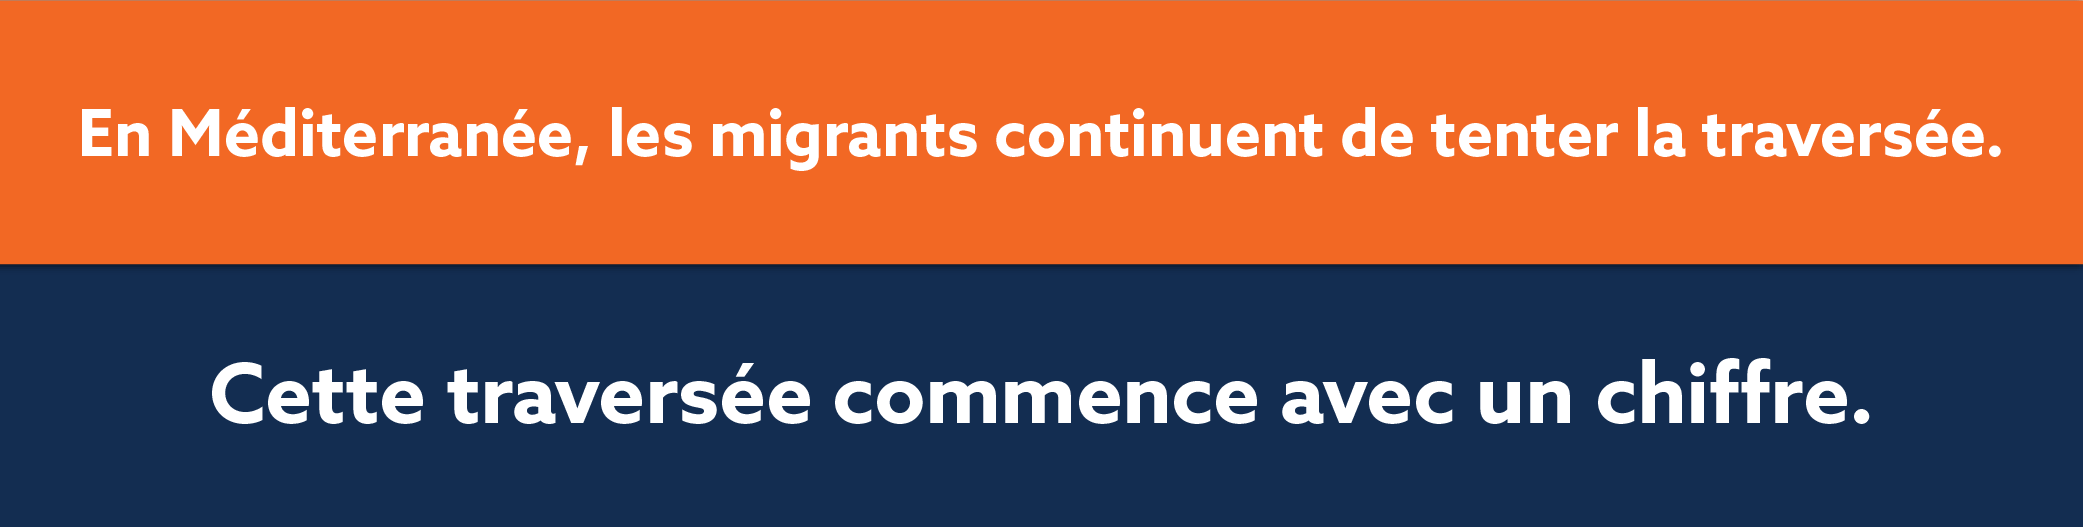 FRENCH_Migrants_Organized-01.png